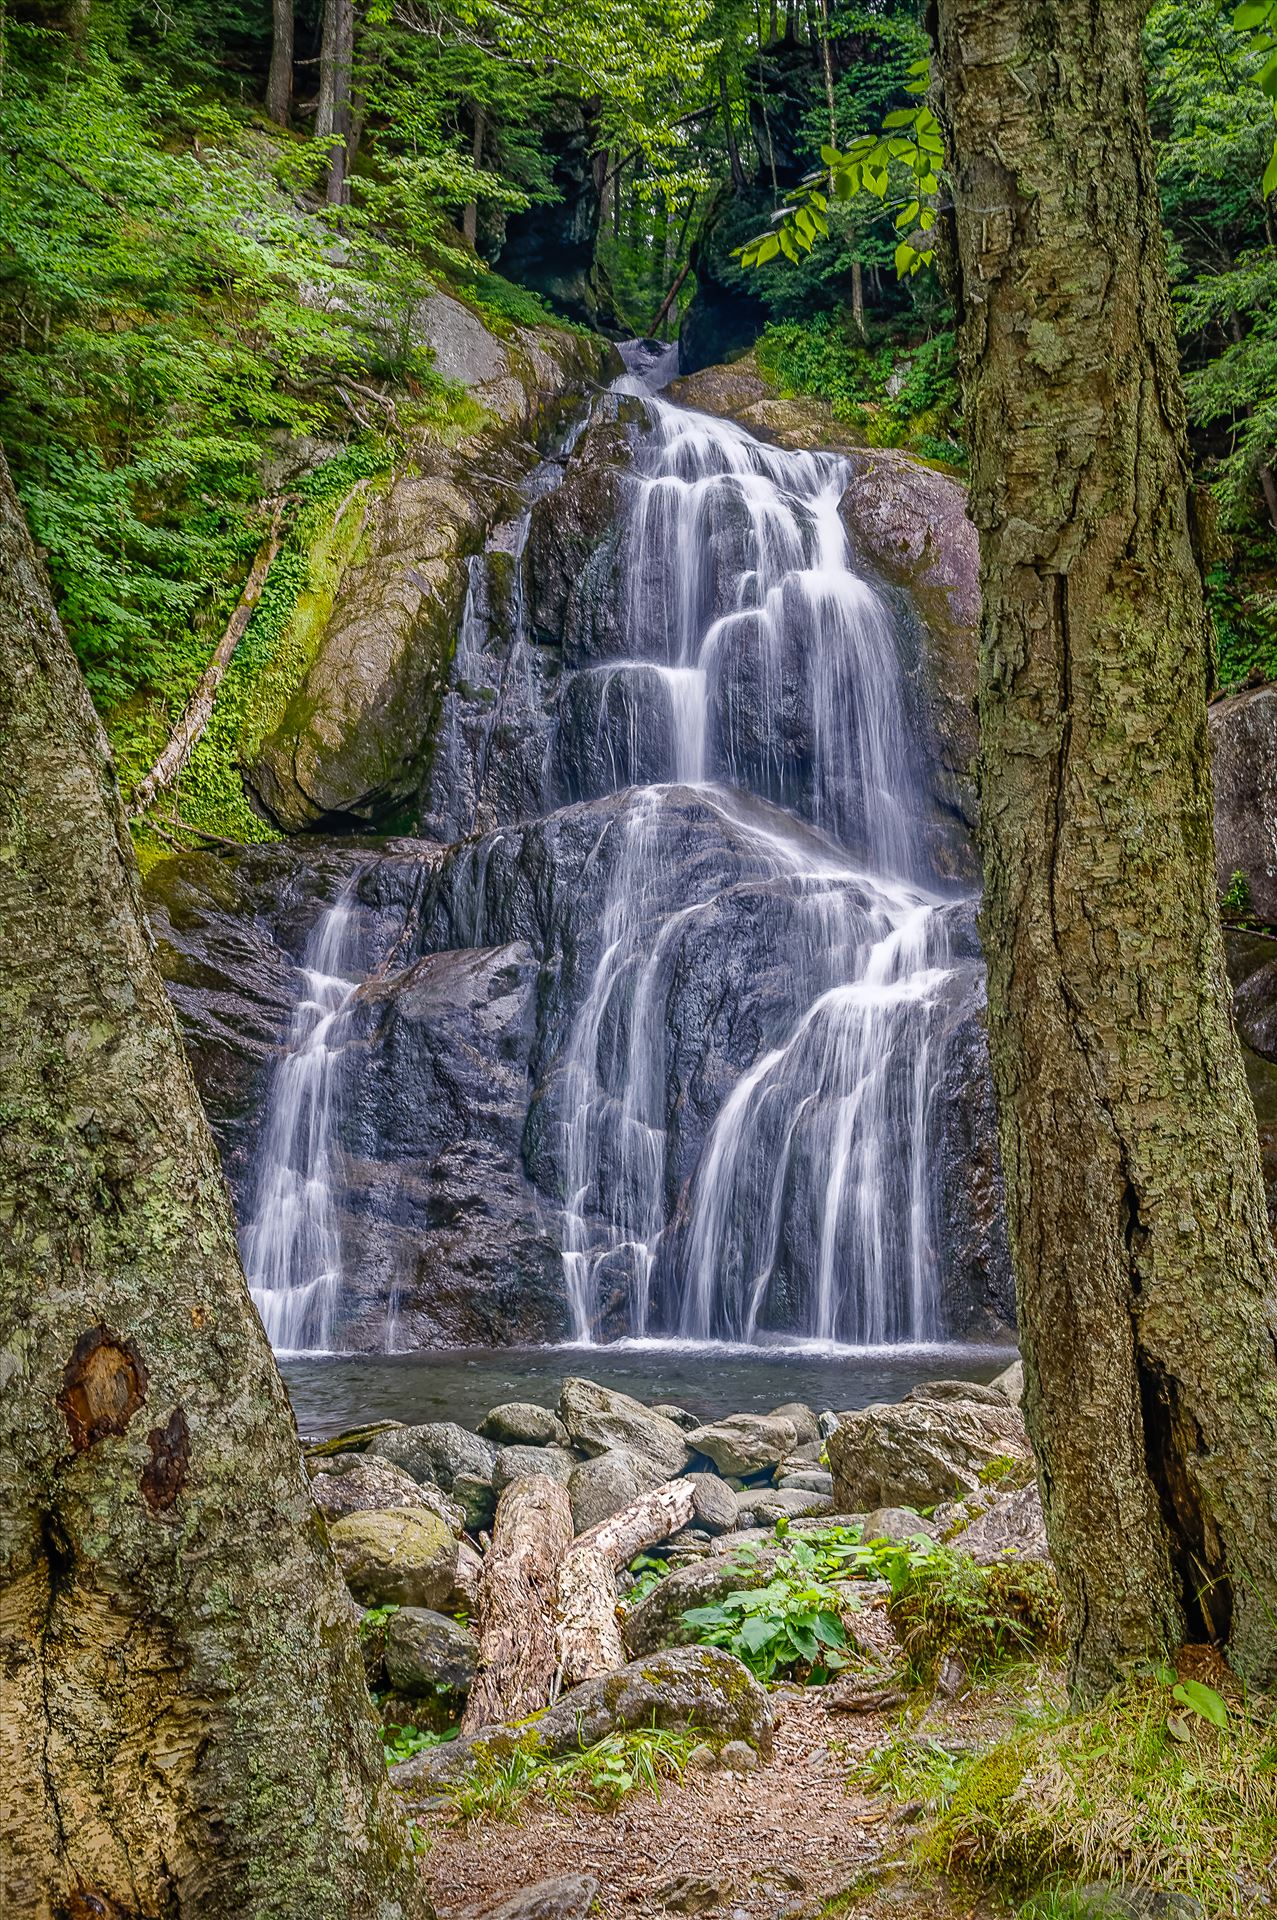 Moss Glen Falls - Located in Granville, Vermont by Buckmaster